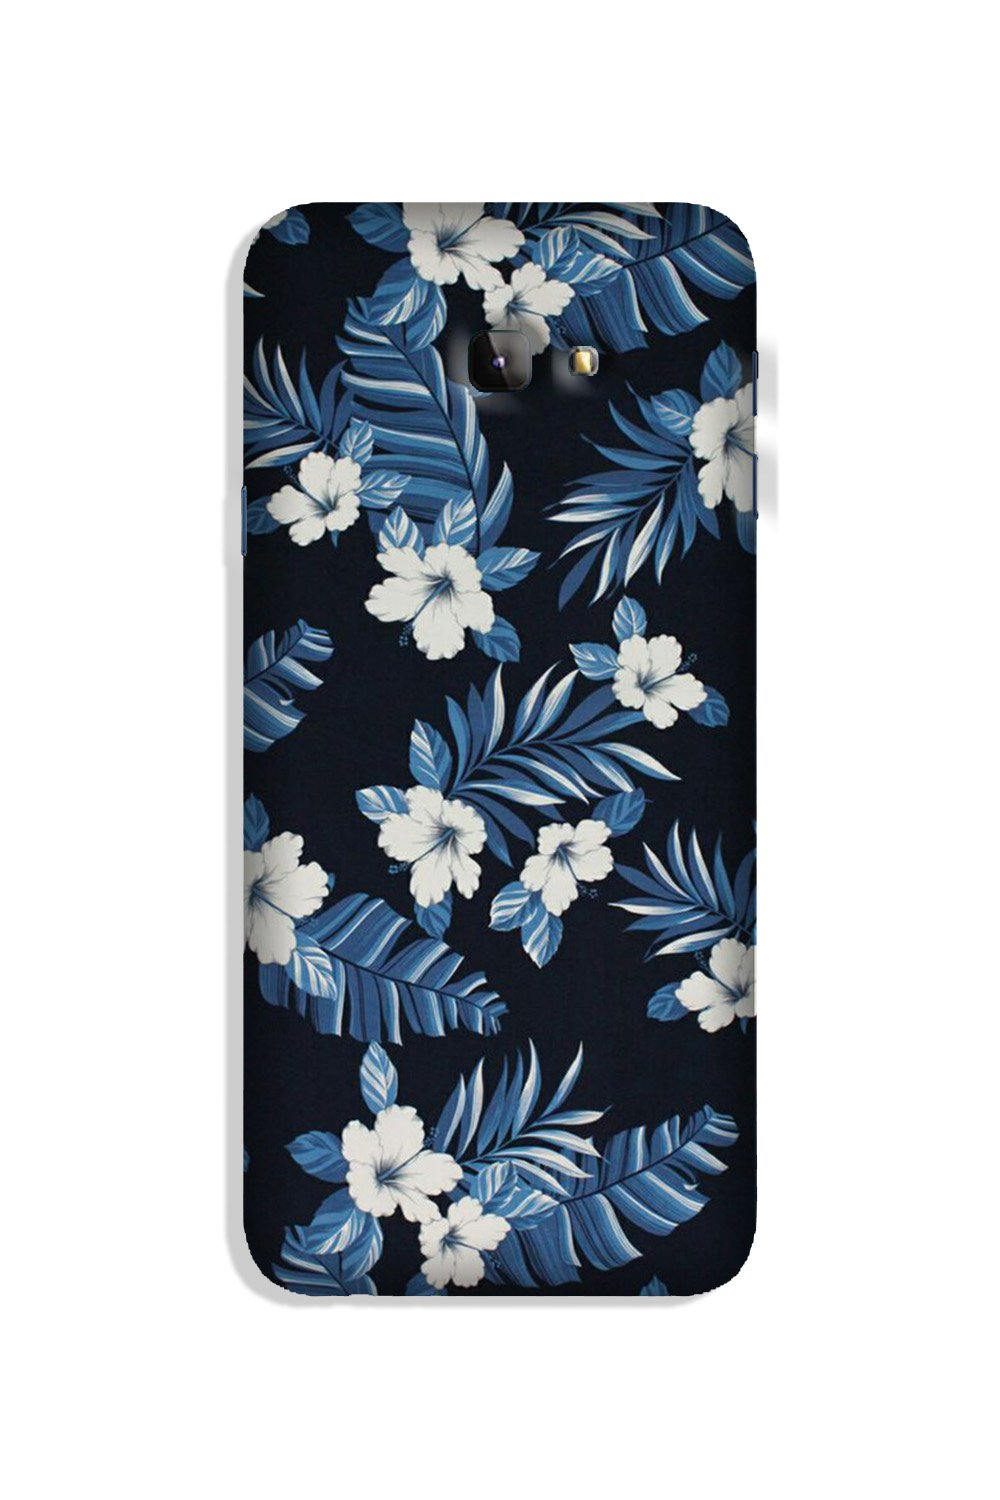 White flowers Blue Background2 Case for Galaxy J4 Plus